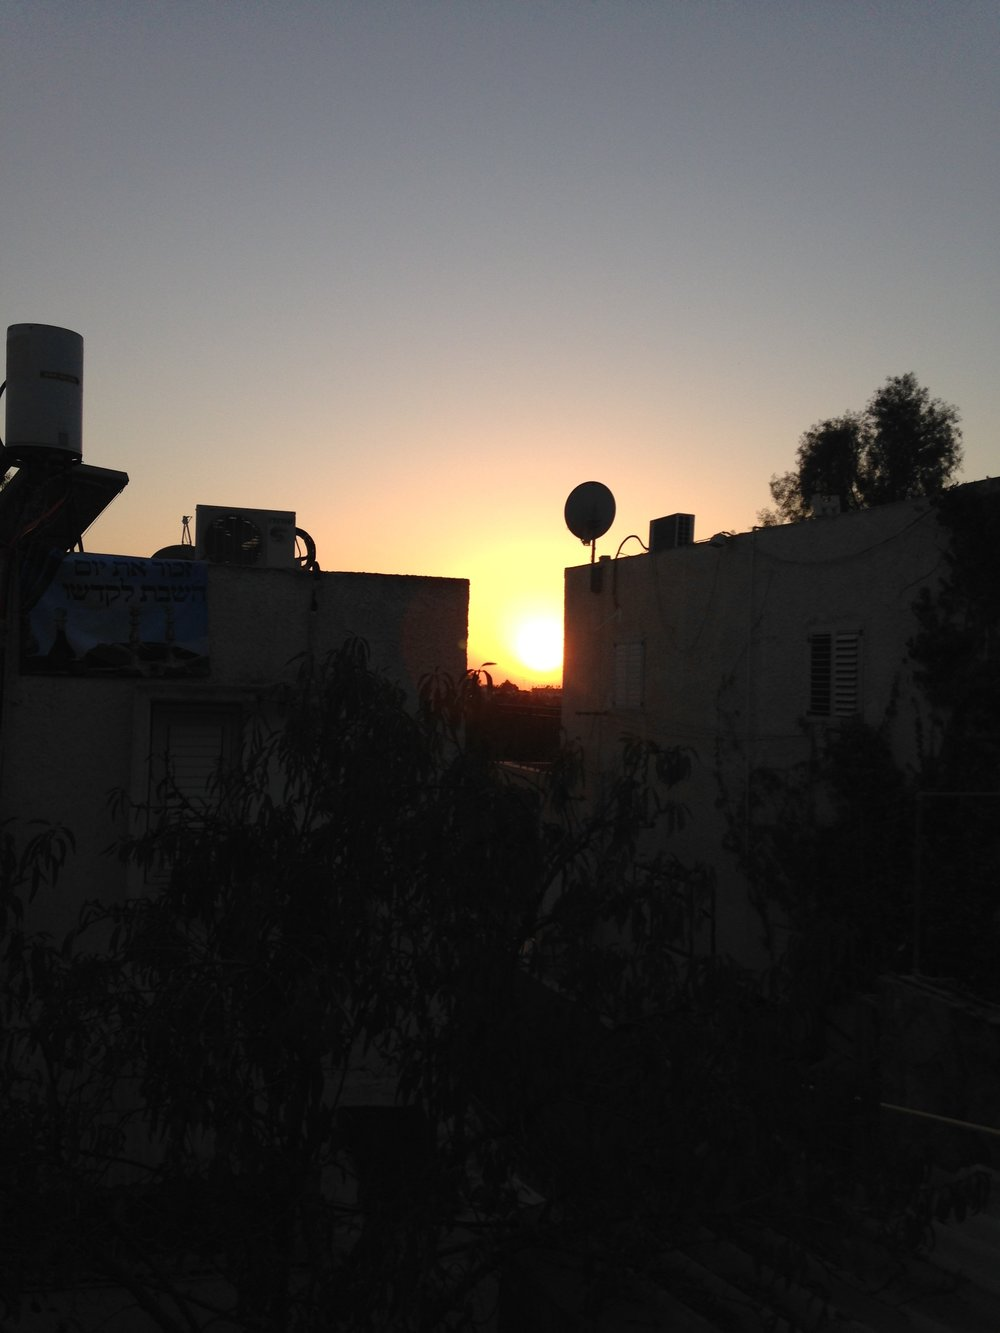 Sunset in Arad